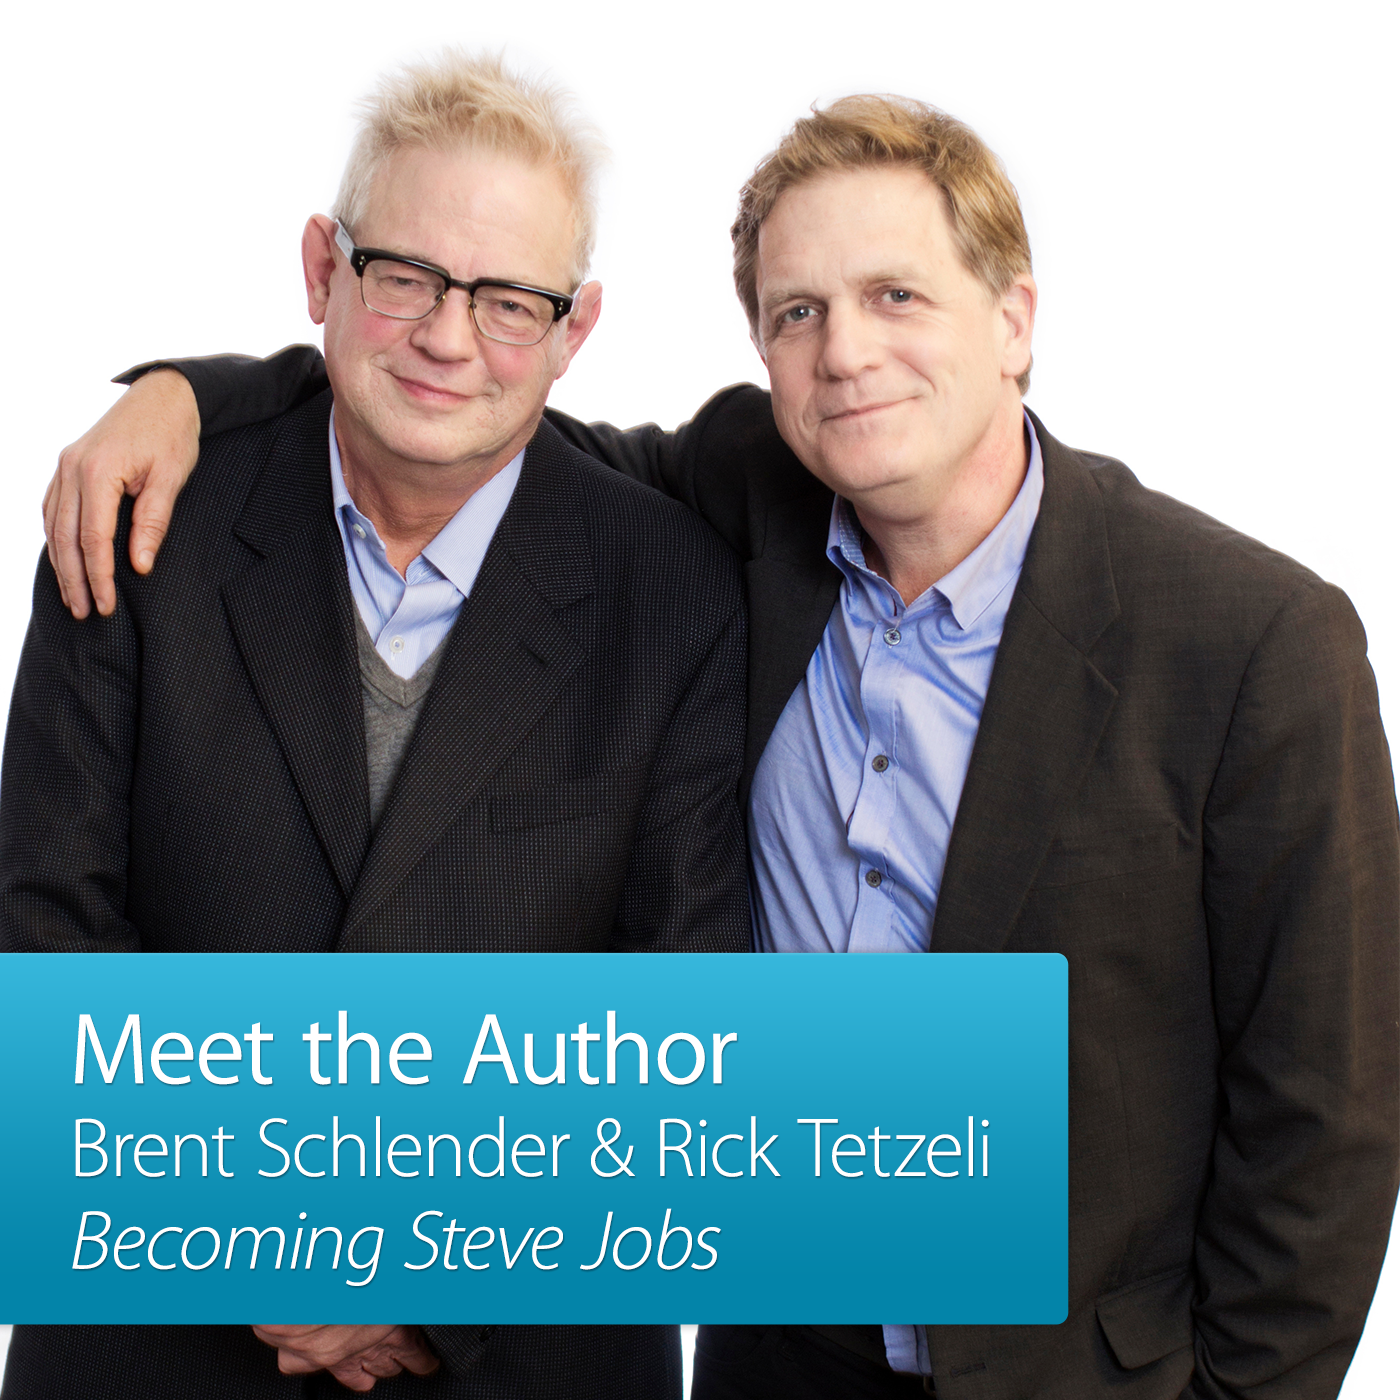 Brent Schlender and Rick Tetzeli: Meet the Author